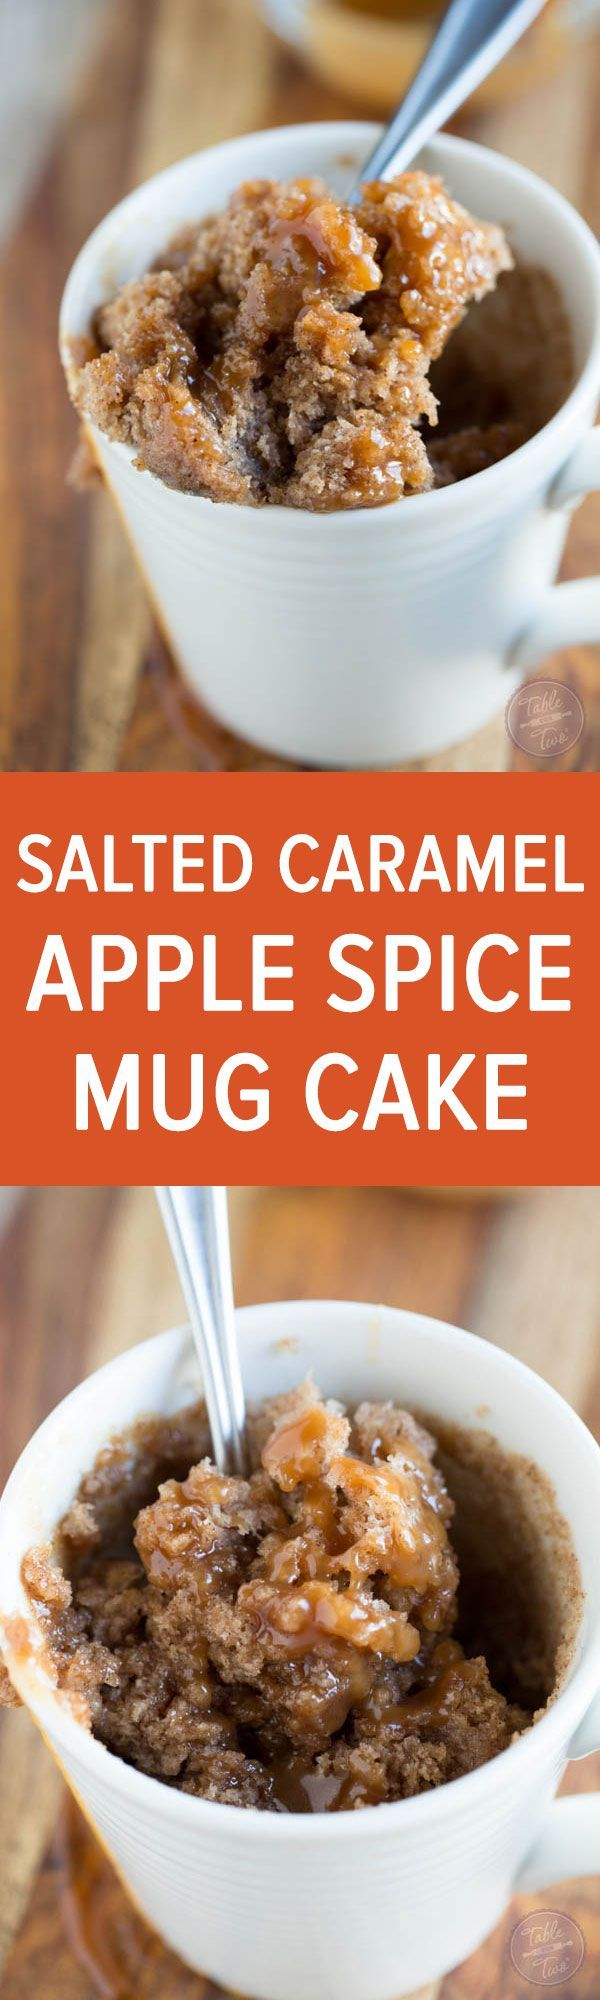 Celebrate apple season with this salted caramel apple spice mug cake! Less than 5 minutes gets you a single serving cake to satisfy that sweet tooth!